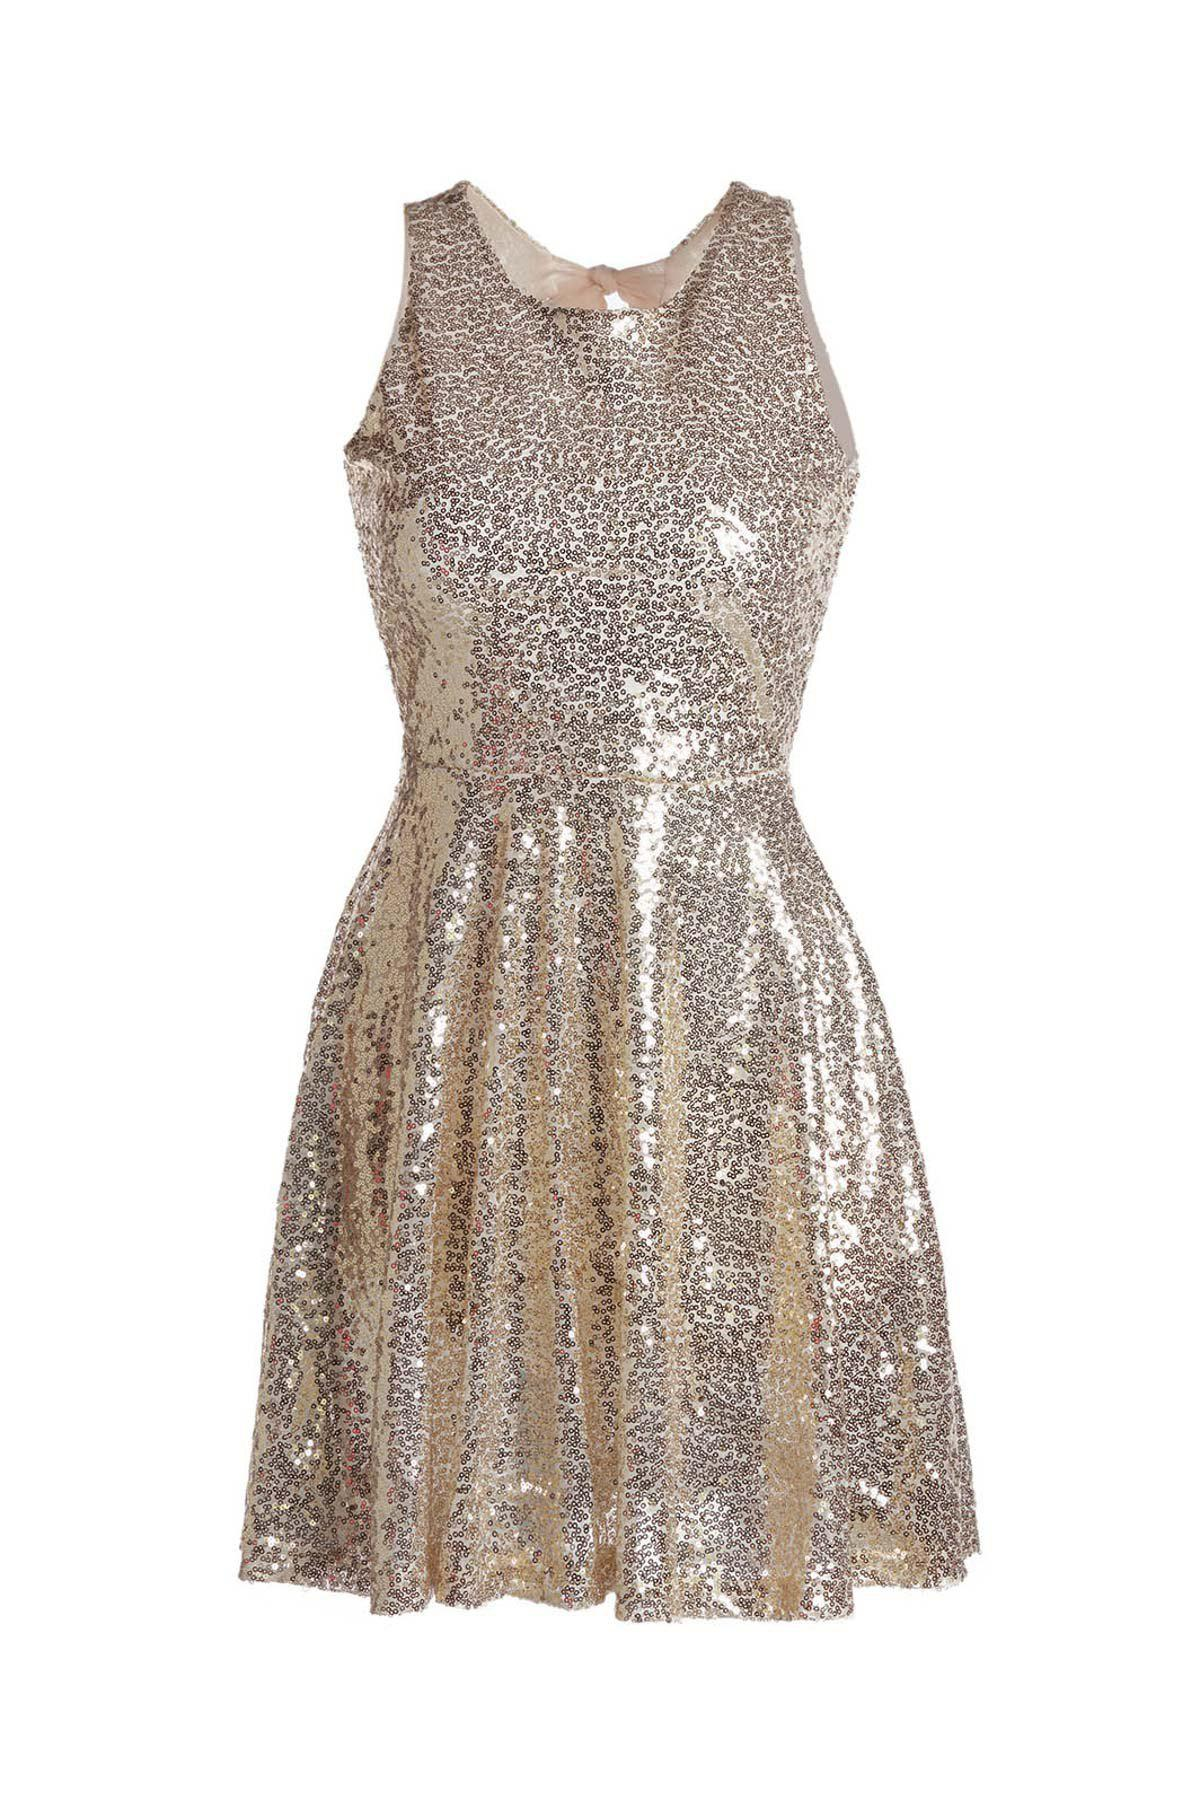 Attractive Open Back Sequined Sleeveless Mini Dress For Women